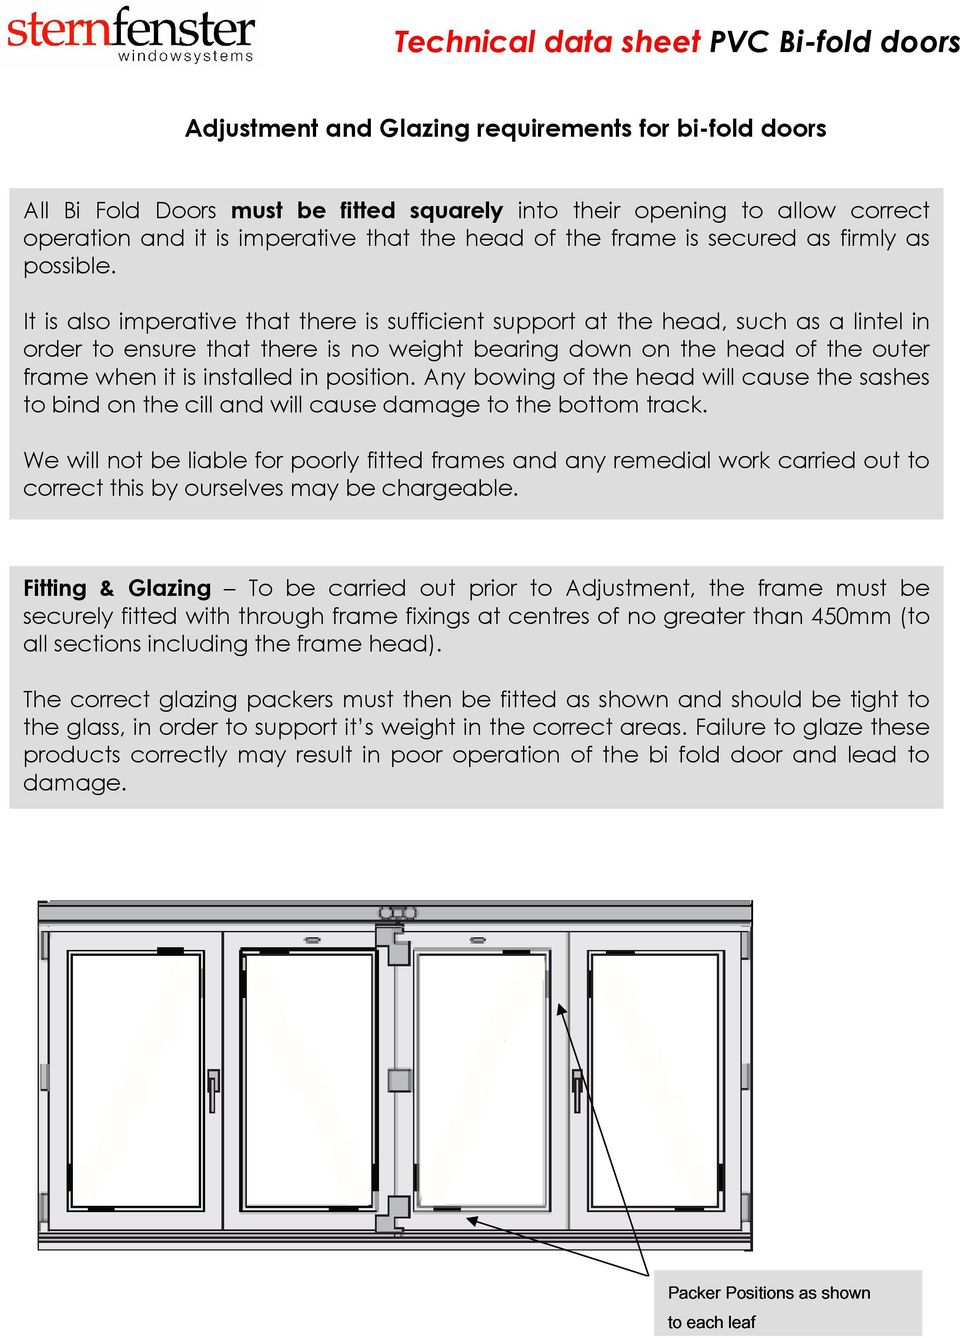 It is also imperative that there is sufficient support at the head, such as a lintel in order to ensure that there is no weight bearing down on the head of the outer frame when it is installed in